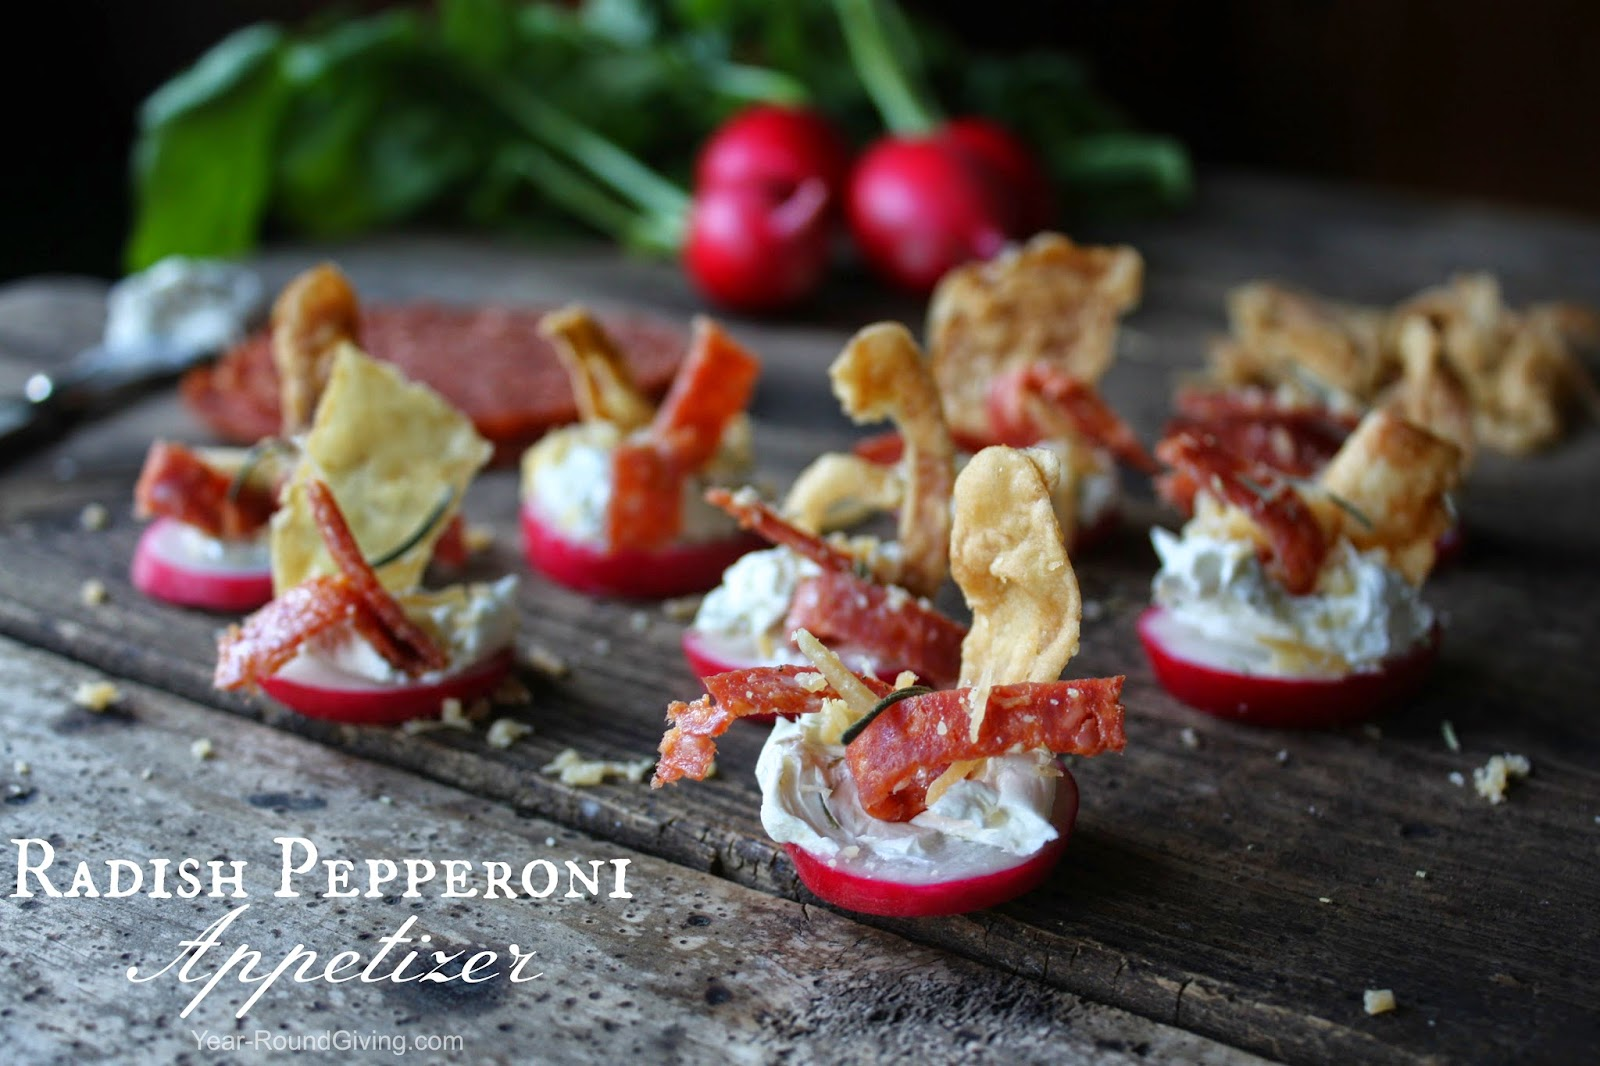 Radish Pepperoni Appetizers